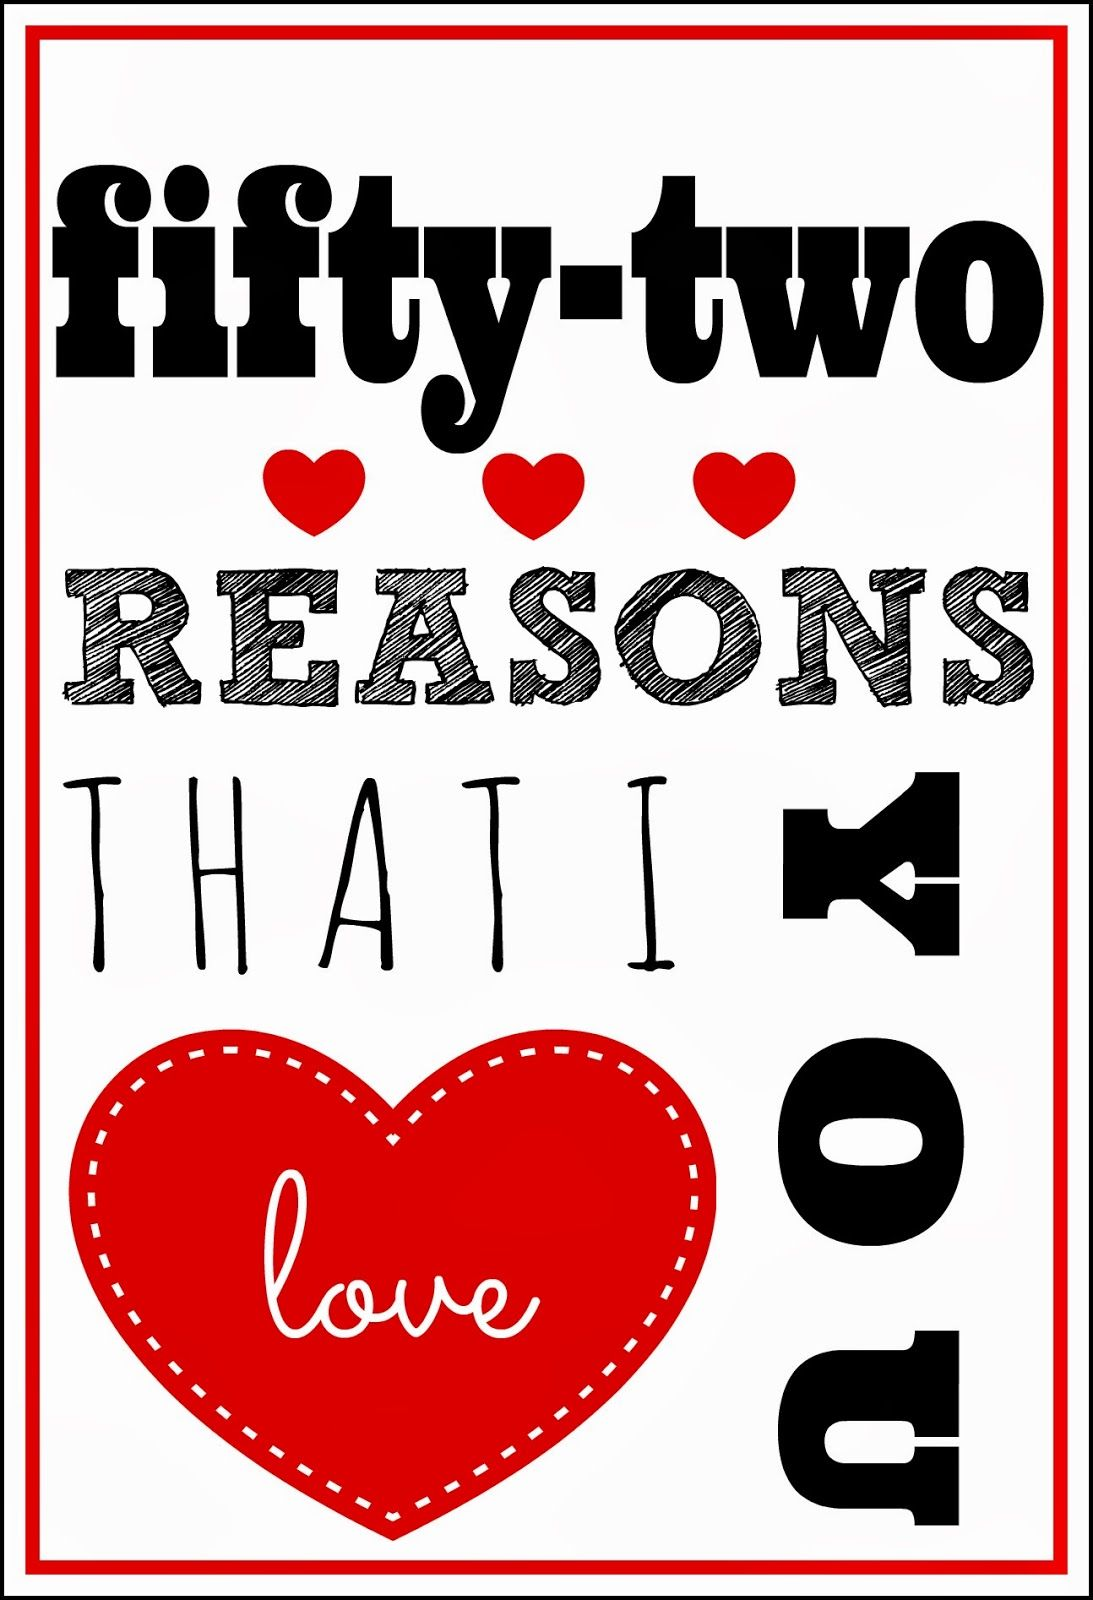 The Inspiring Larissa Another Day 52 Reasons I Love You Printable A Intended For 52 Reaso 52 Reasons Why I Love You Reasons I Love You Reasons Why I Love You